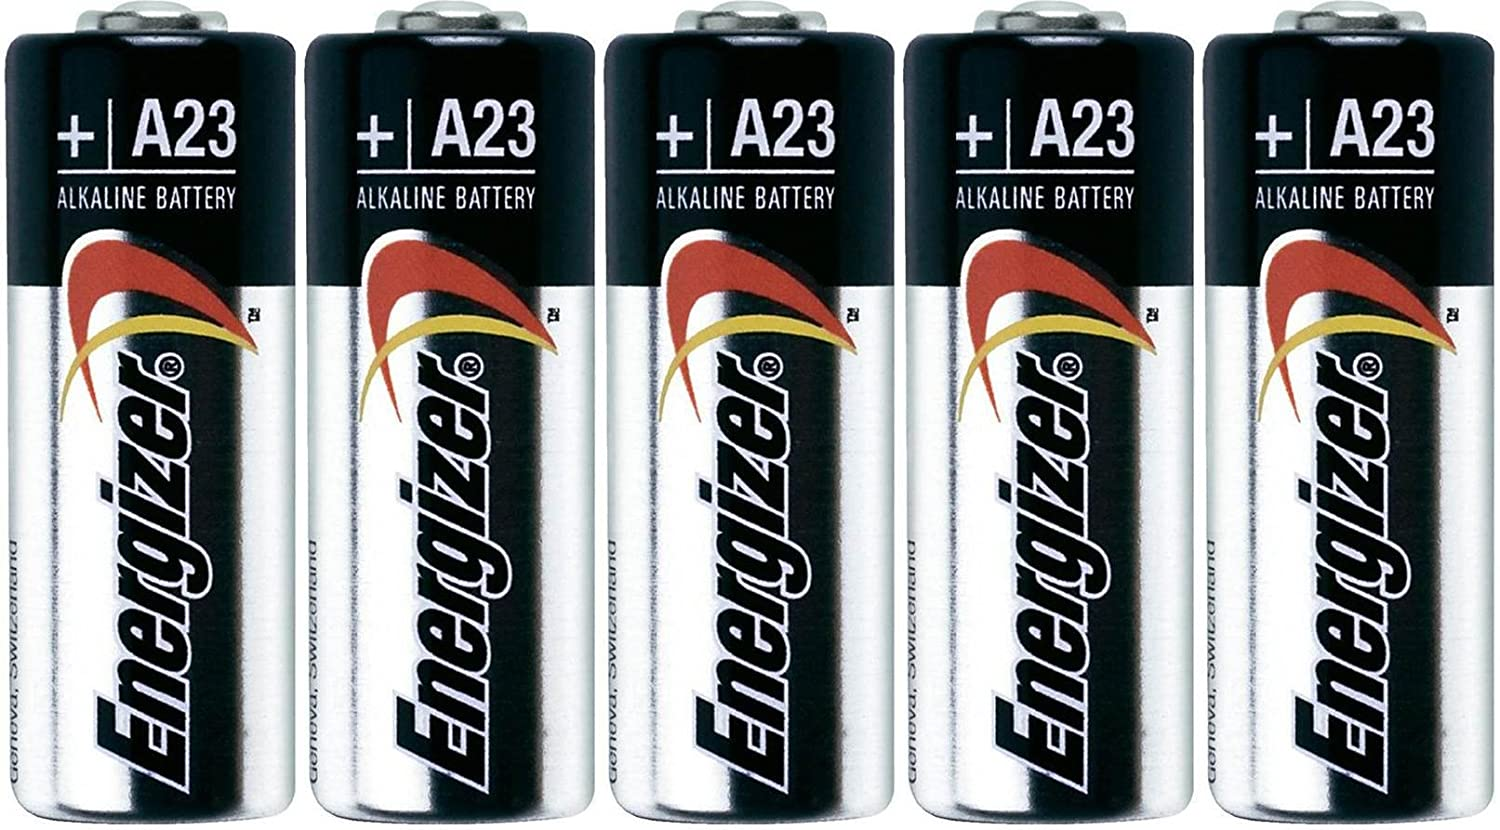 5 Energizer A23 GP23AE 21/23 23A 23GA MN21 GP23 23AE 12v Alkaline Batteries Energizer Batteries No Model